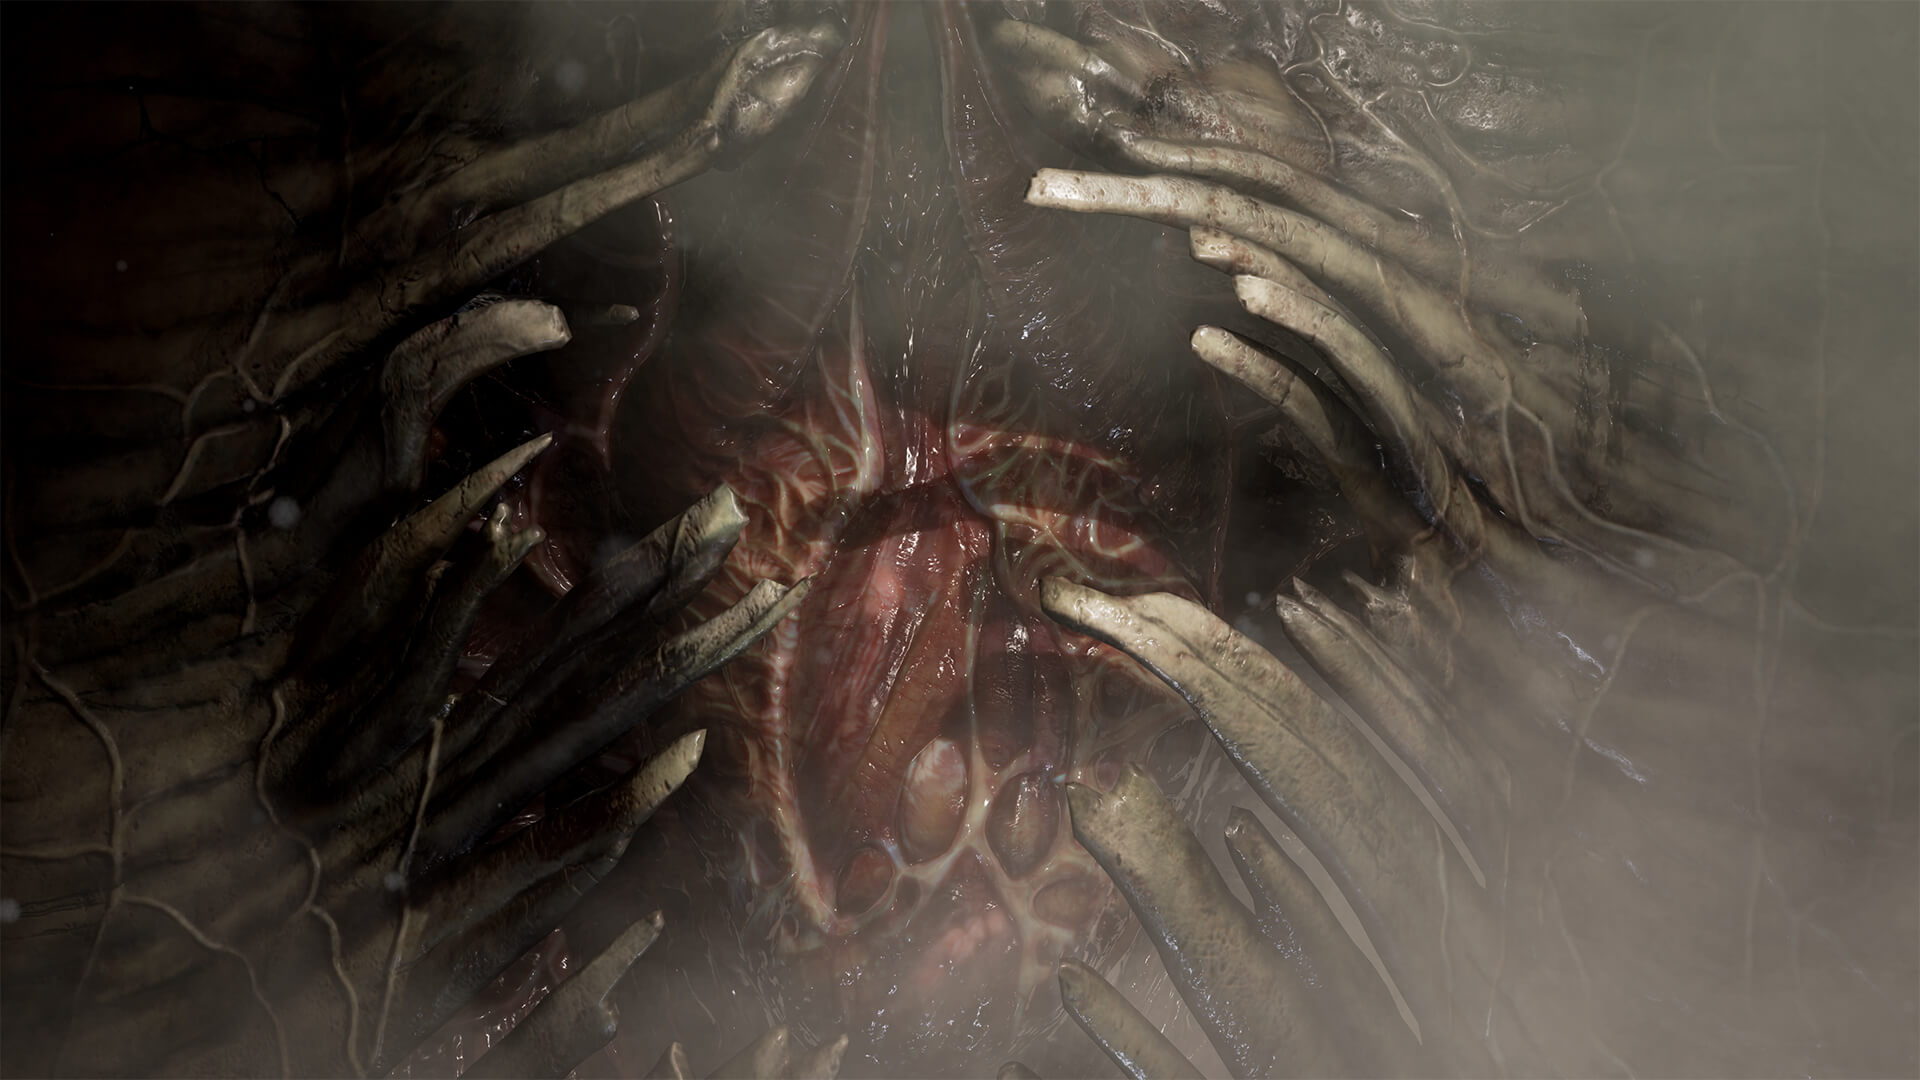 scorn6 1 - Scorn Could Be the Most Disturbing Game of 2017